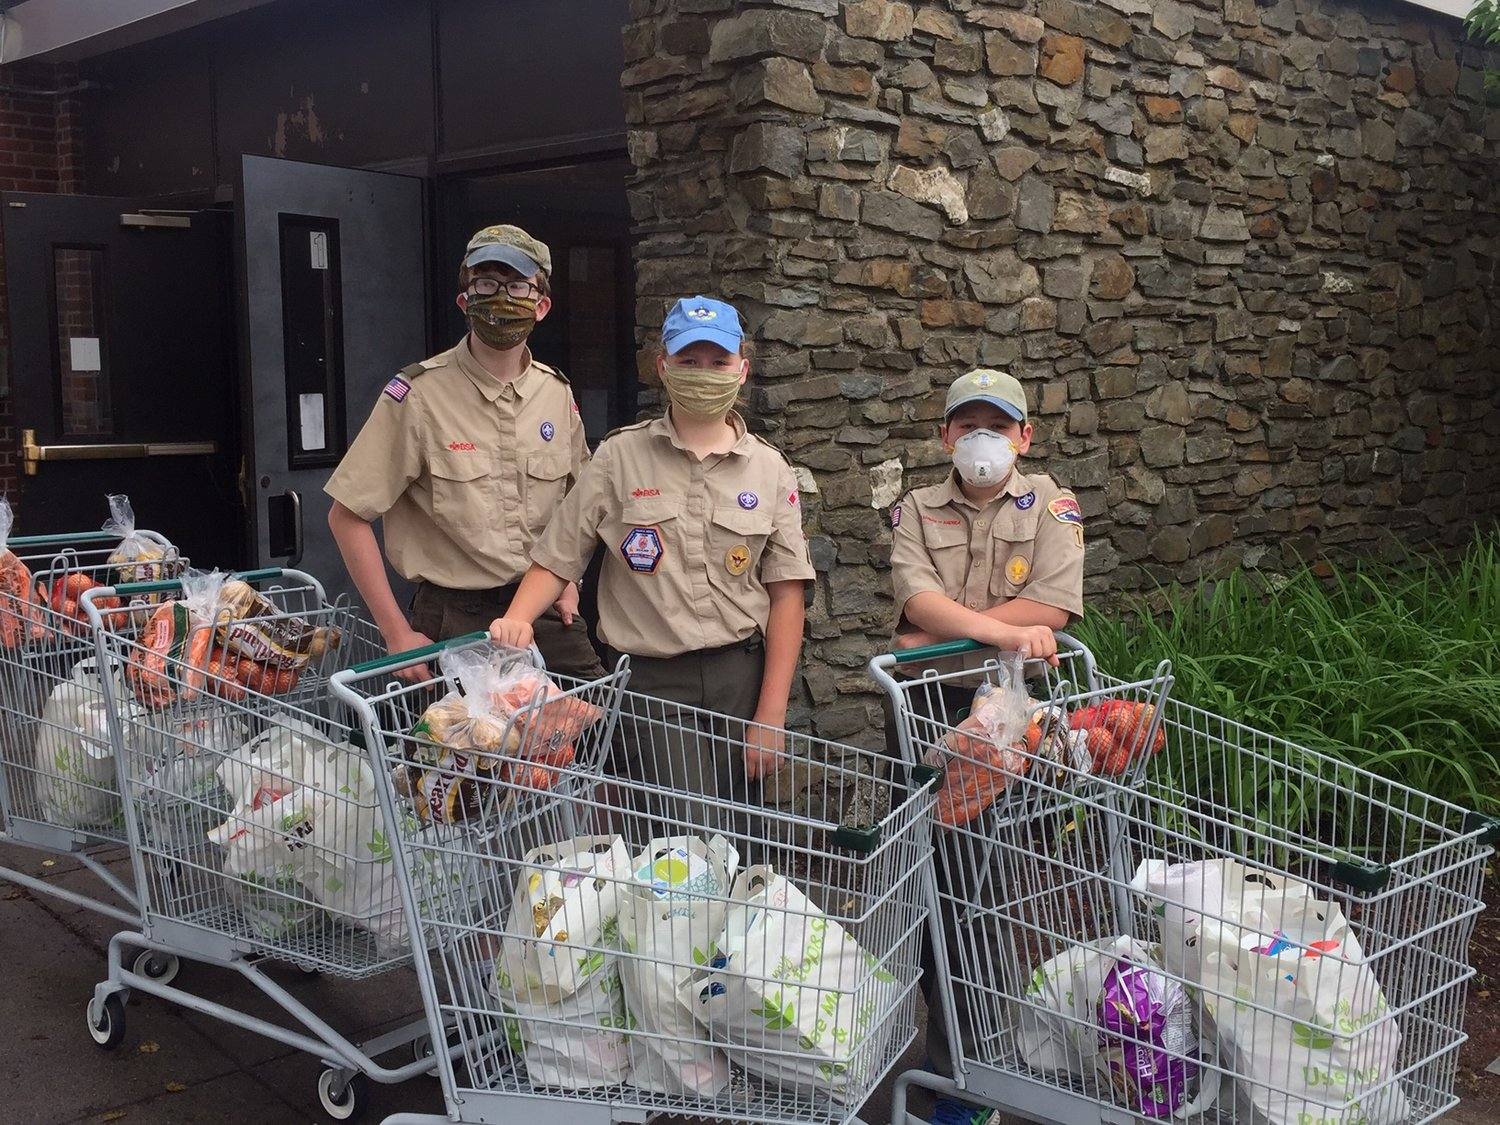 Scouts from BSA Troops 1 & 9 assisting with curbside distribution at Doorways